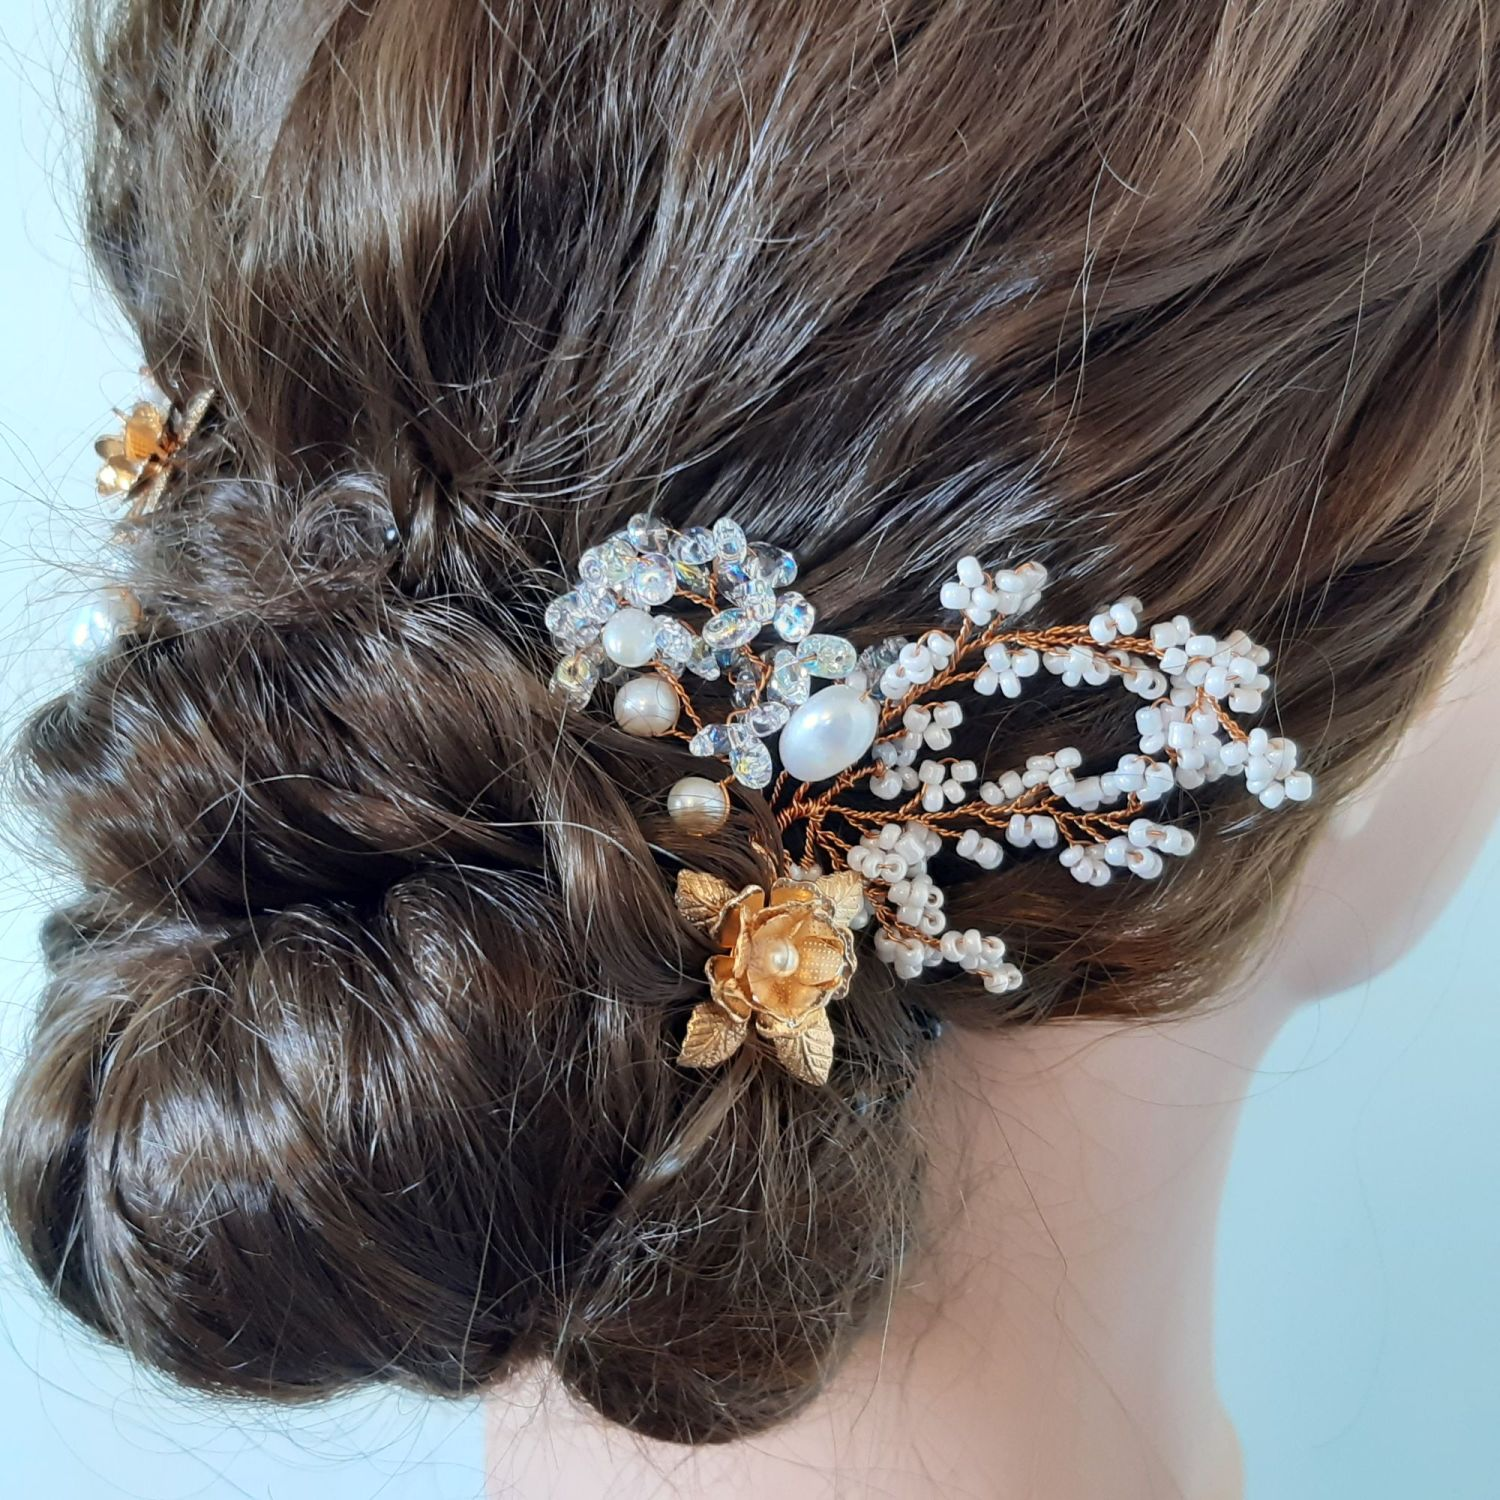 Intricate-flower-floral-occasion-hair-accessories-UK-Roseanne-pin.1